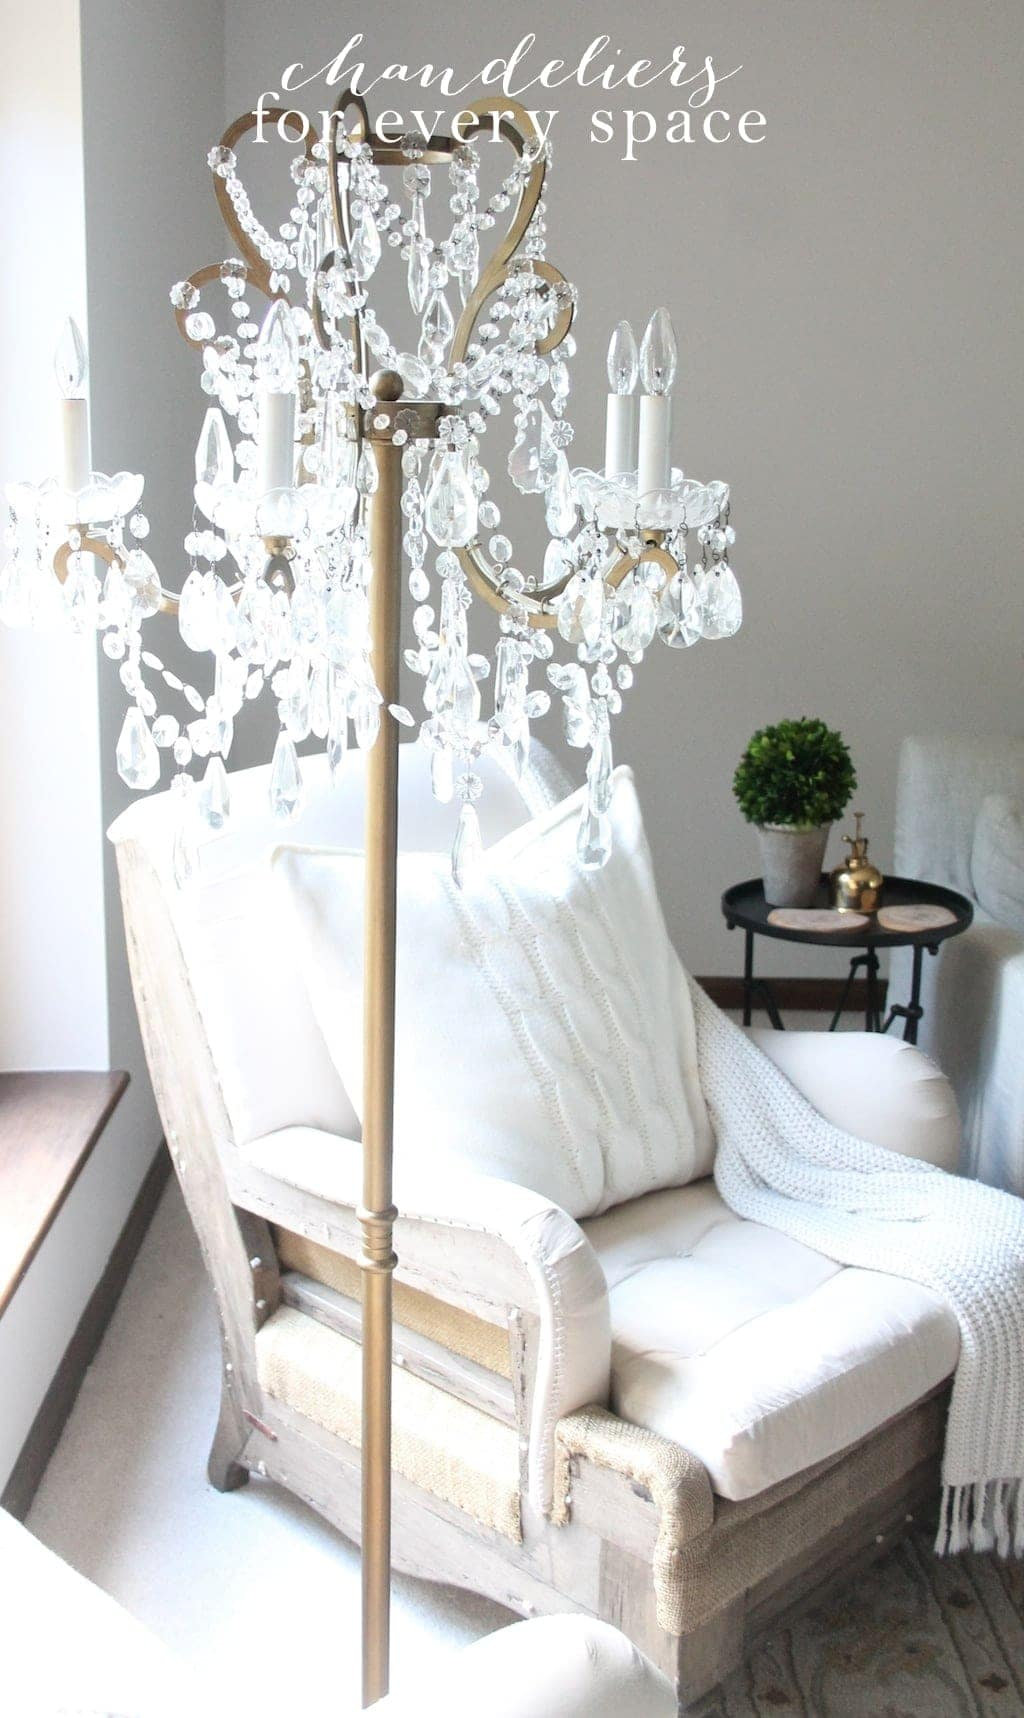 Let There Be Light | My Obsession with Chandeliers - Julie Blanner